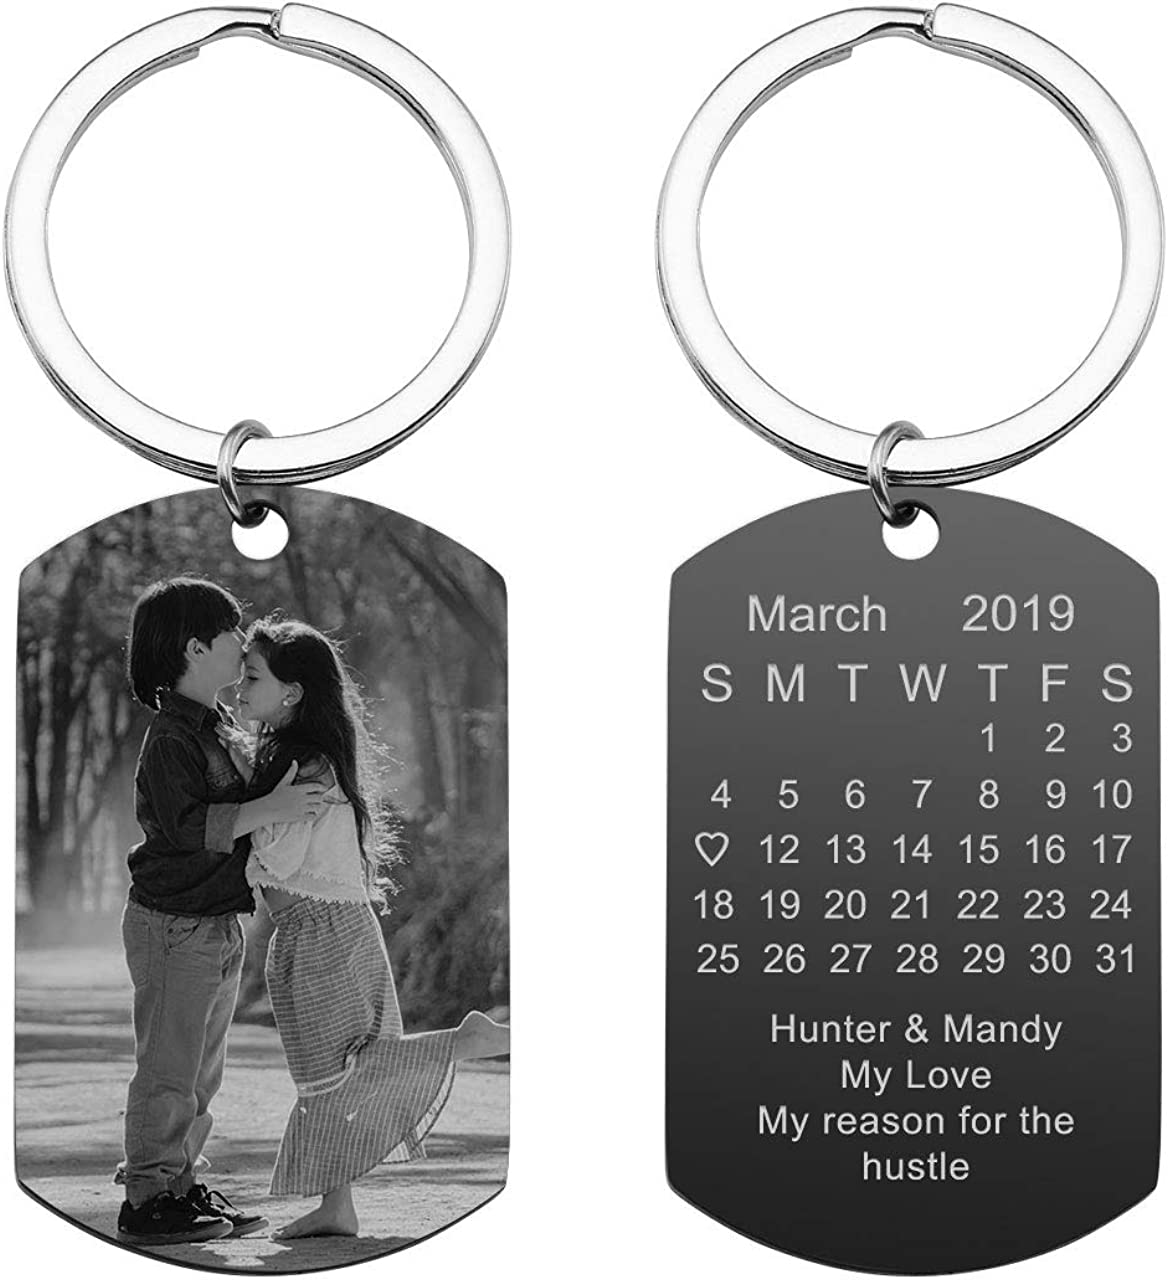 Personalized Master Custom Special Date Calendar/Photo/Text Customized Picture Military Dog Tag Pendant Keychain Keyring for Men Women Anniversary Birthday Gift